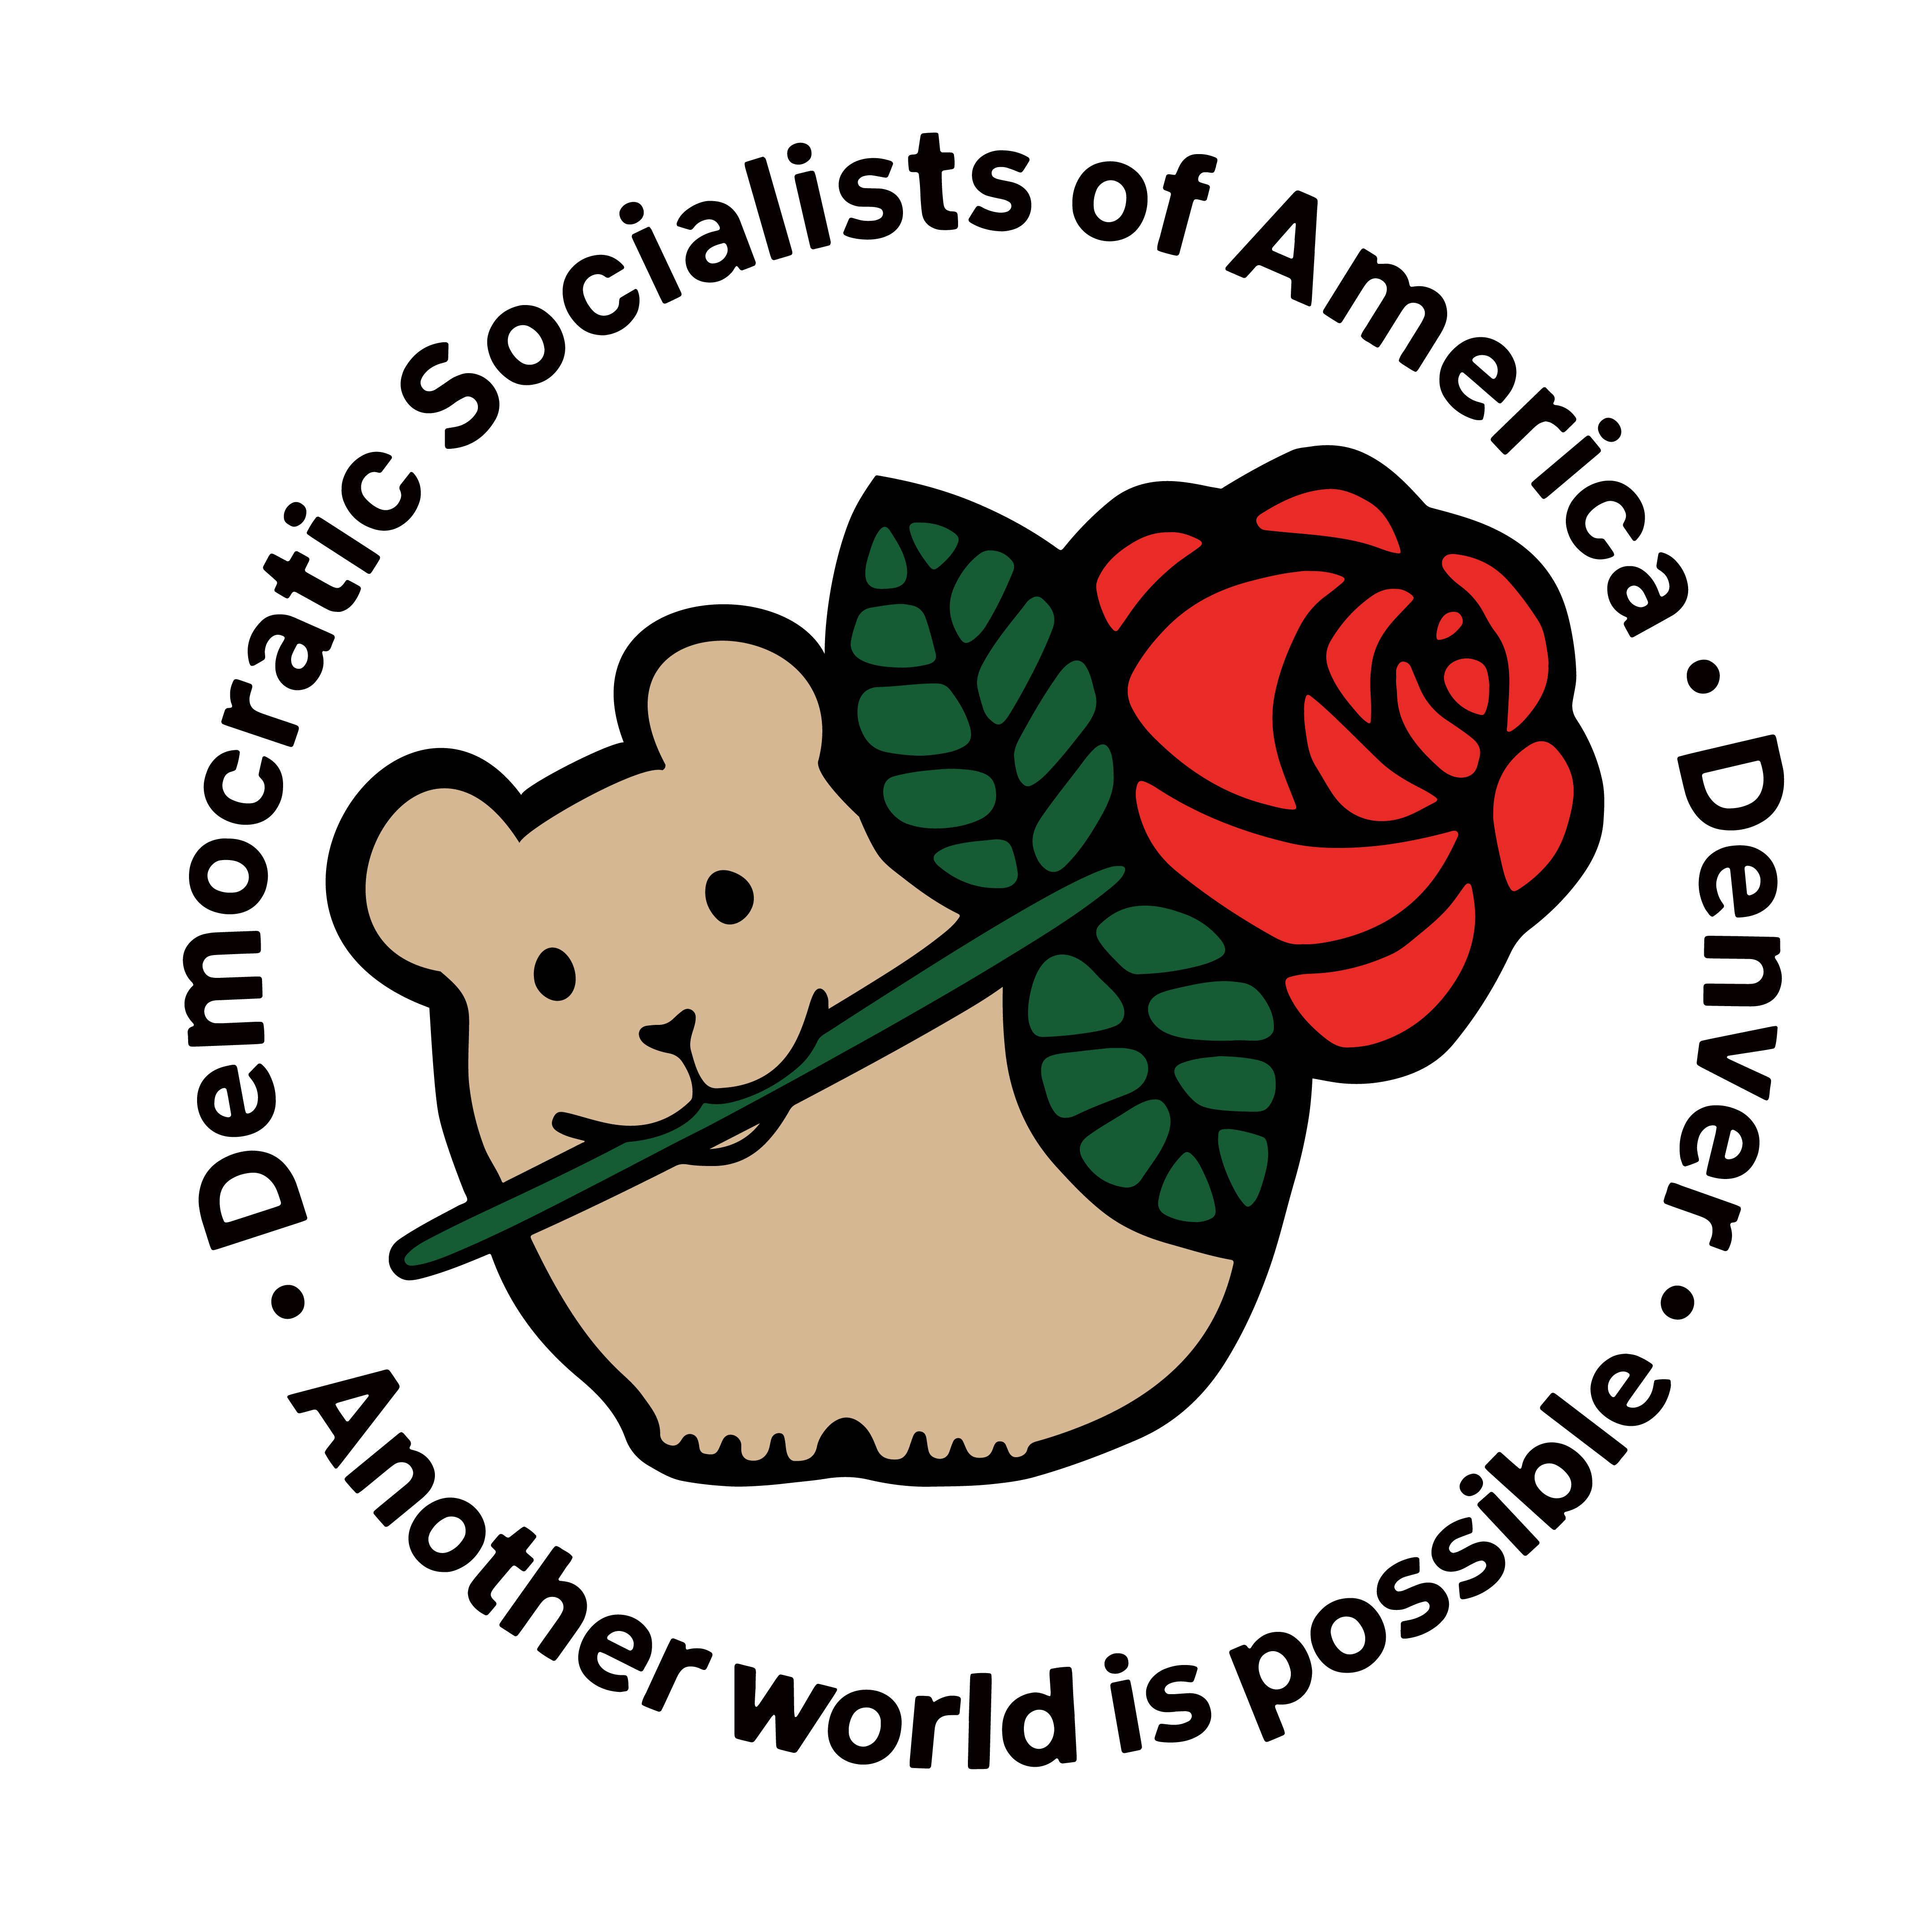 The Denver DSA logo: a drawing of a pika with a rose in its mouth, with text 'Democratic Socialists of America - Denver - Another world is possible